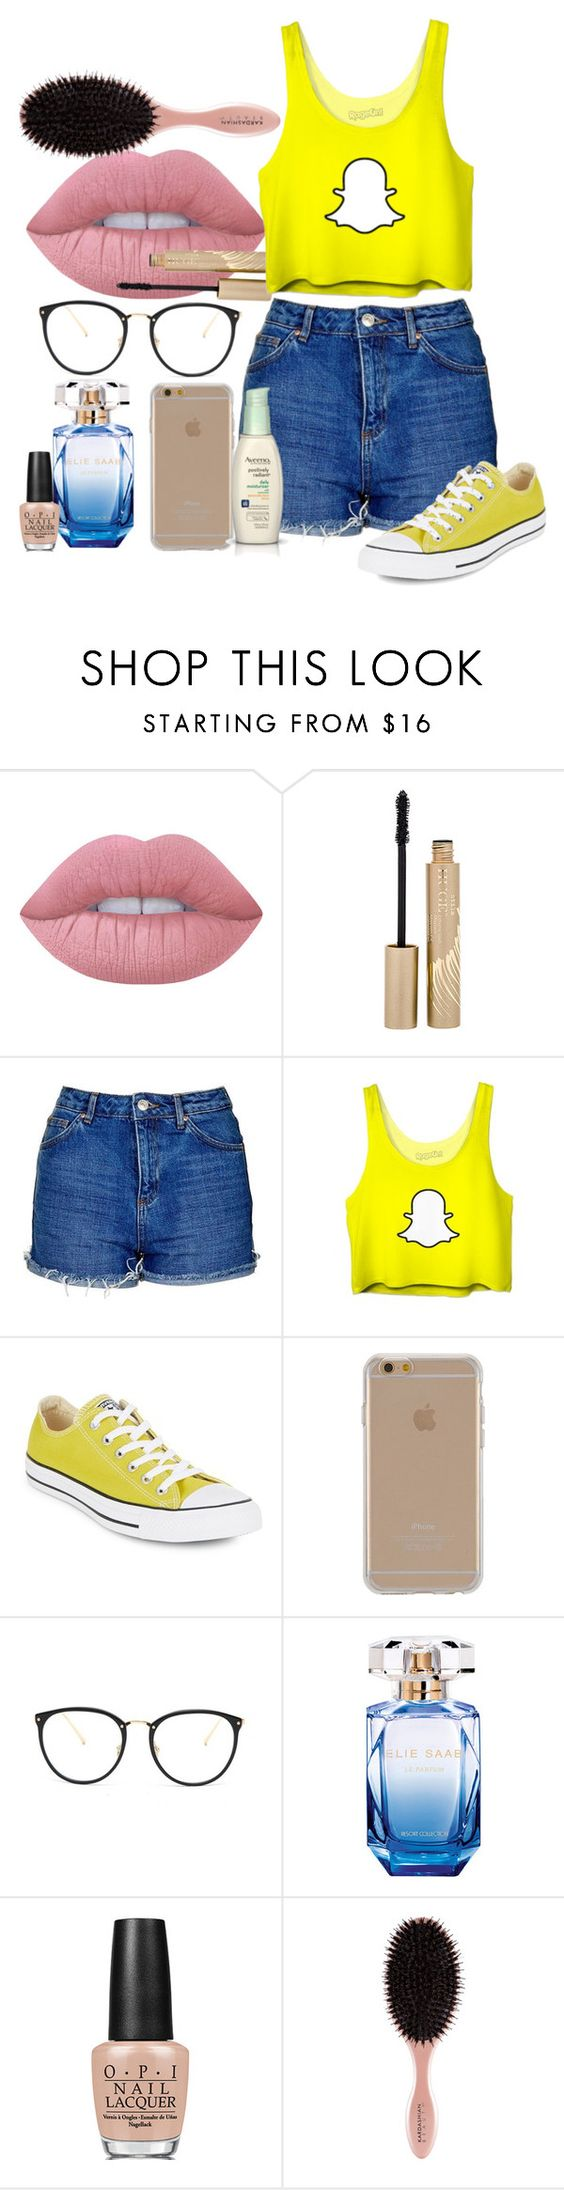 """Crop top Snapchat"" by clo-23 ❤ liked on Polyvore featuring Lime Crime, Stila, Topshop, Converse, Agent 18, Linda Farrow, Elie Saab, OPI and Aveeno"